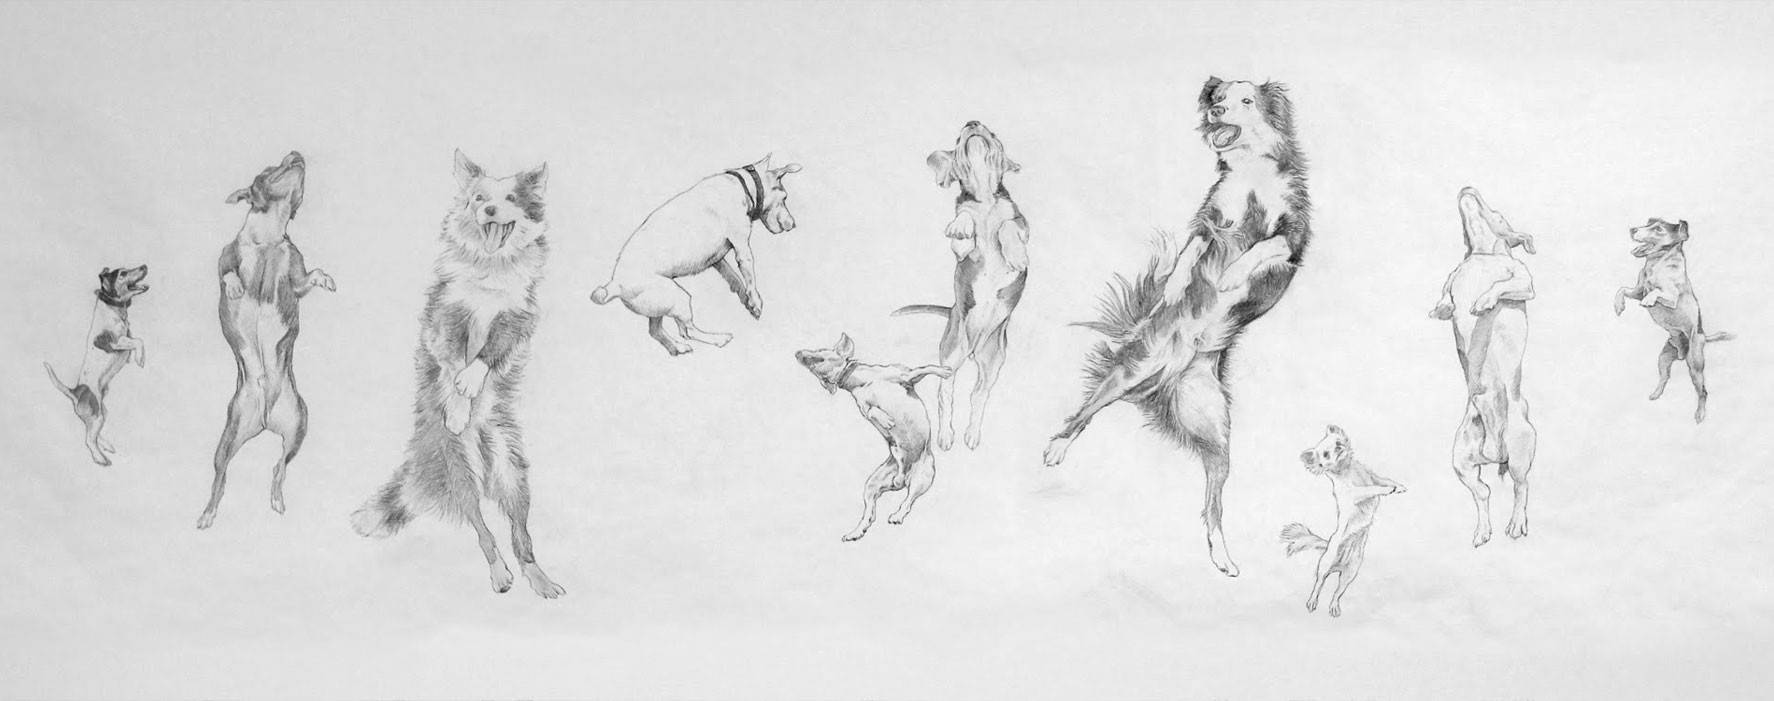 eugenio-rivas-jumping-dogs